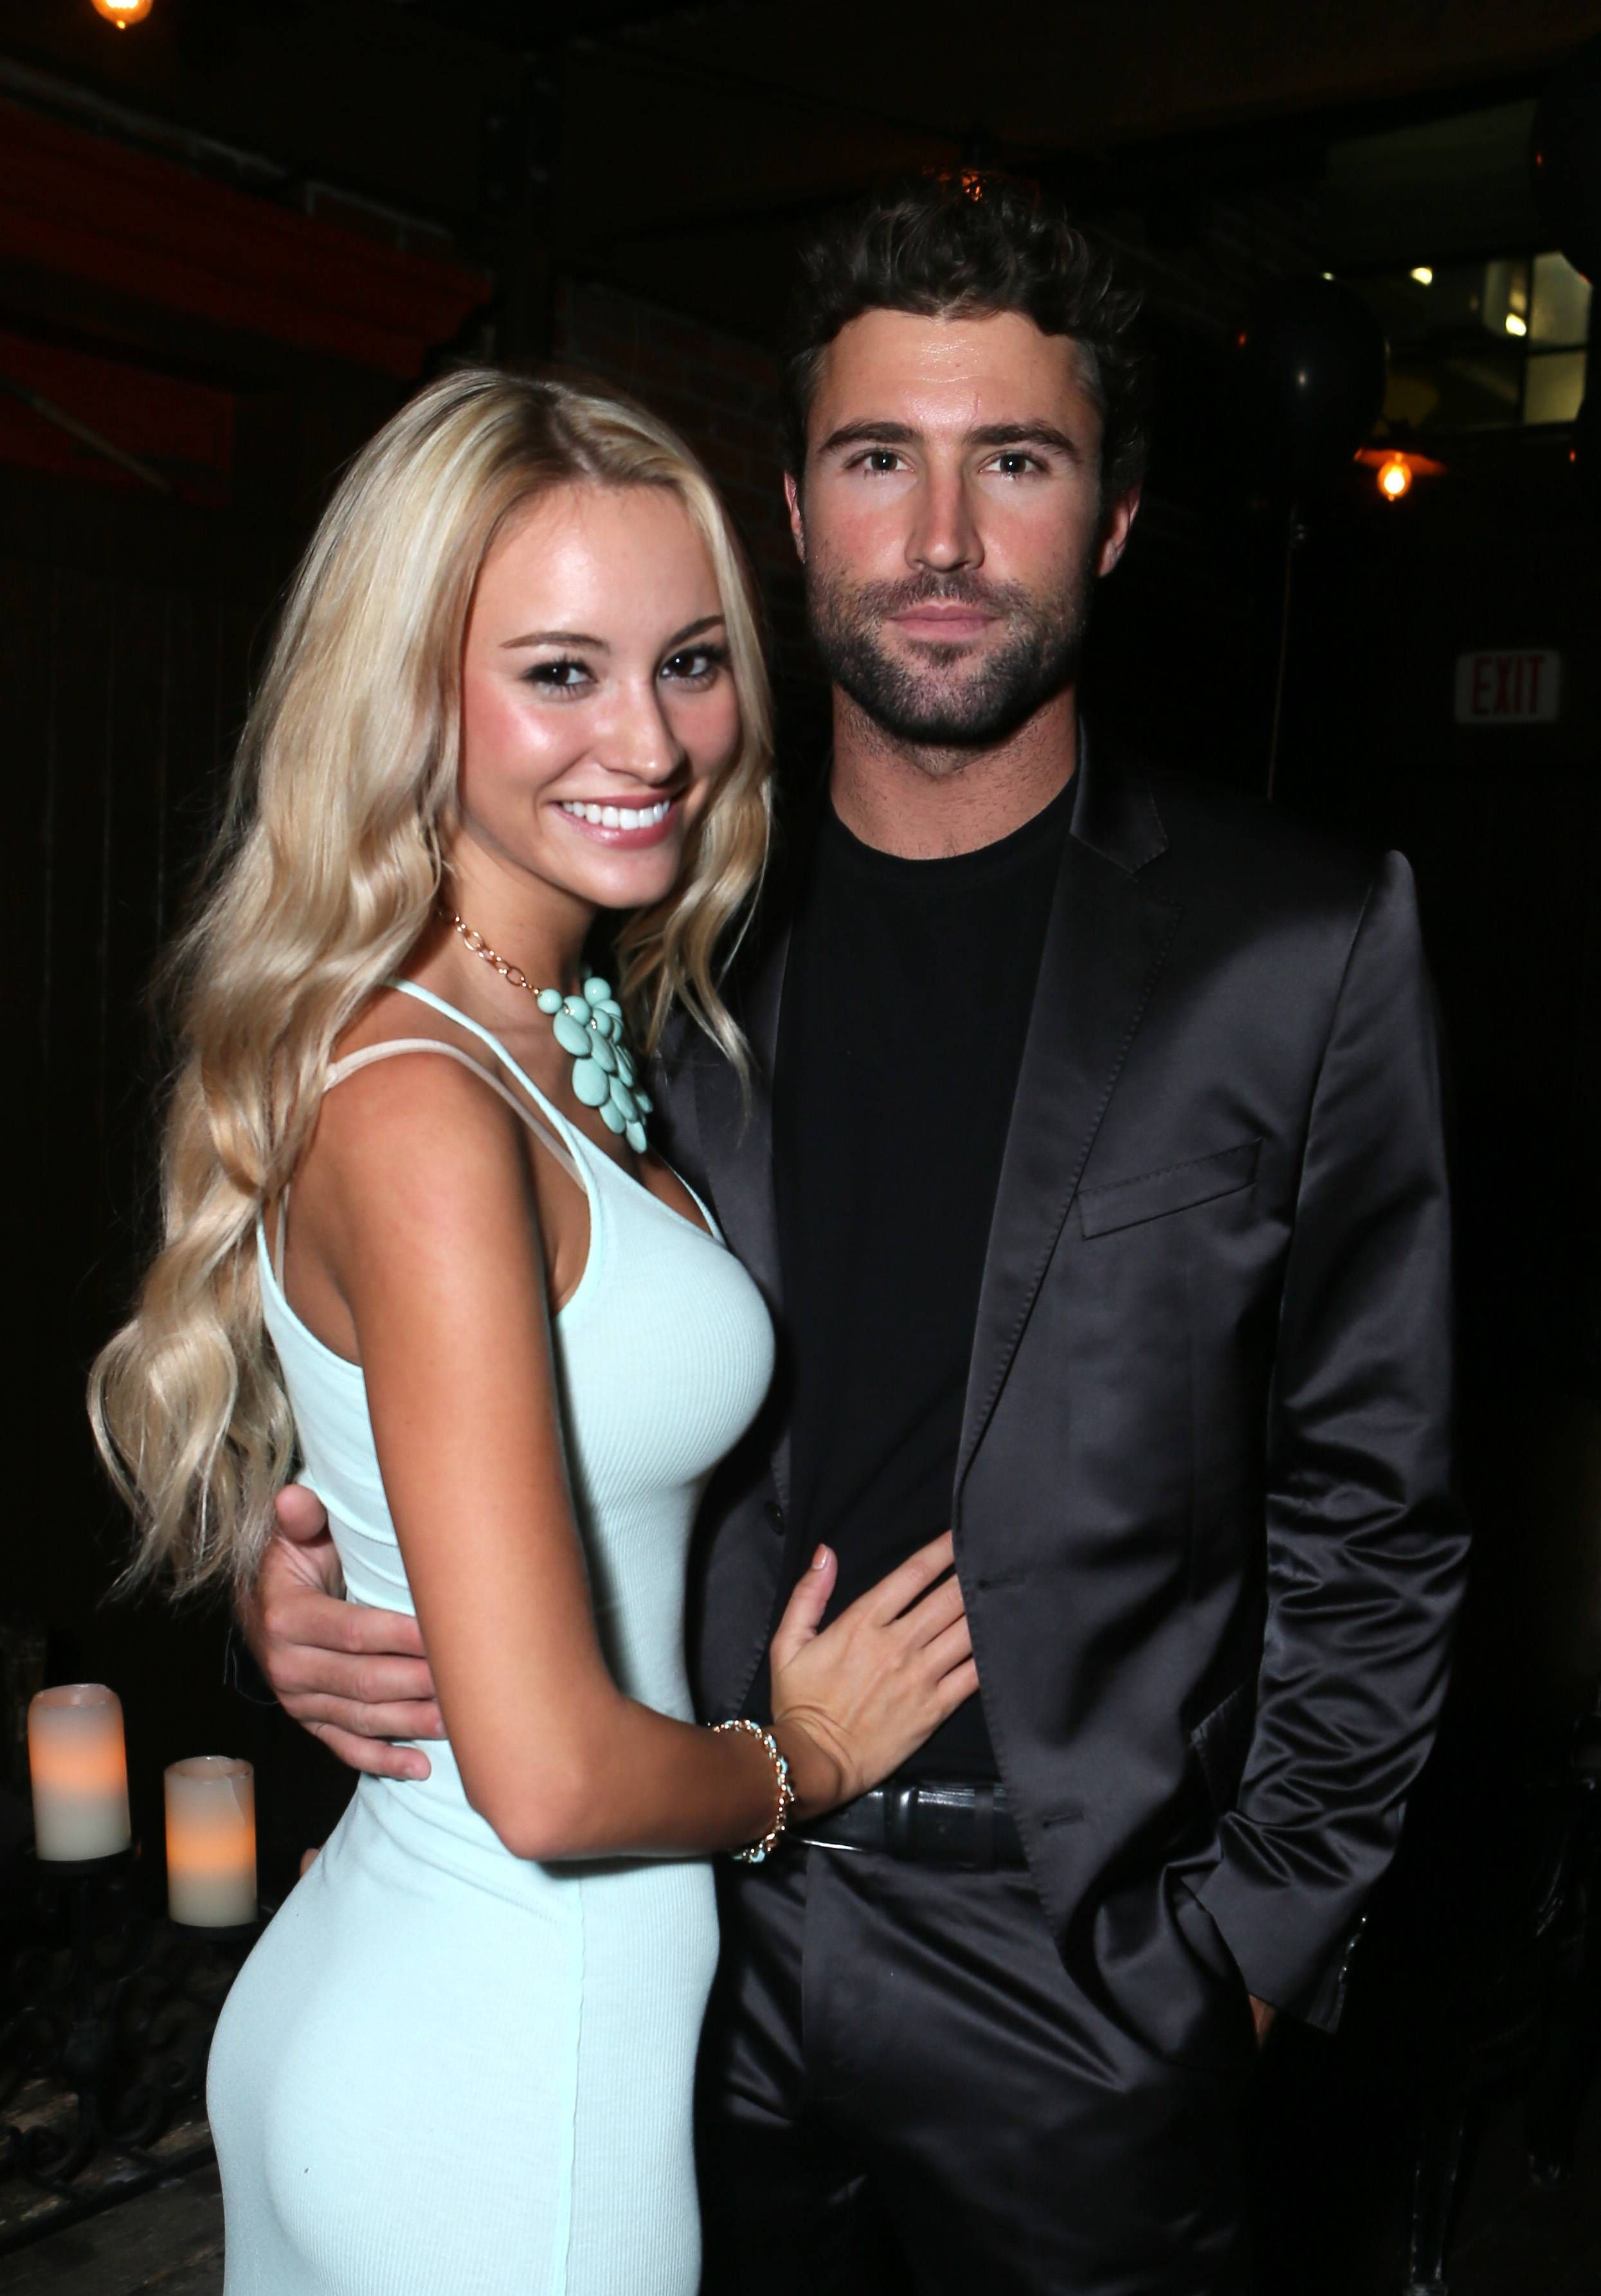 Bryana holly dating brody jenner